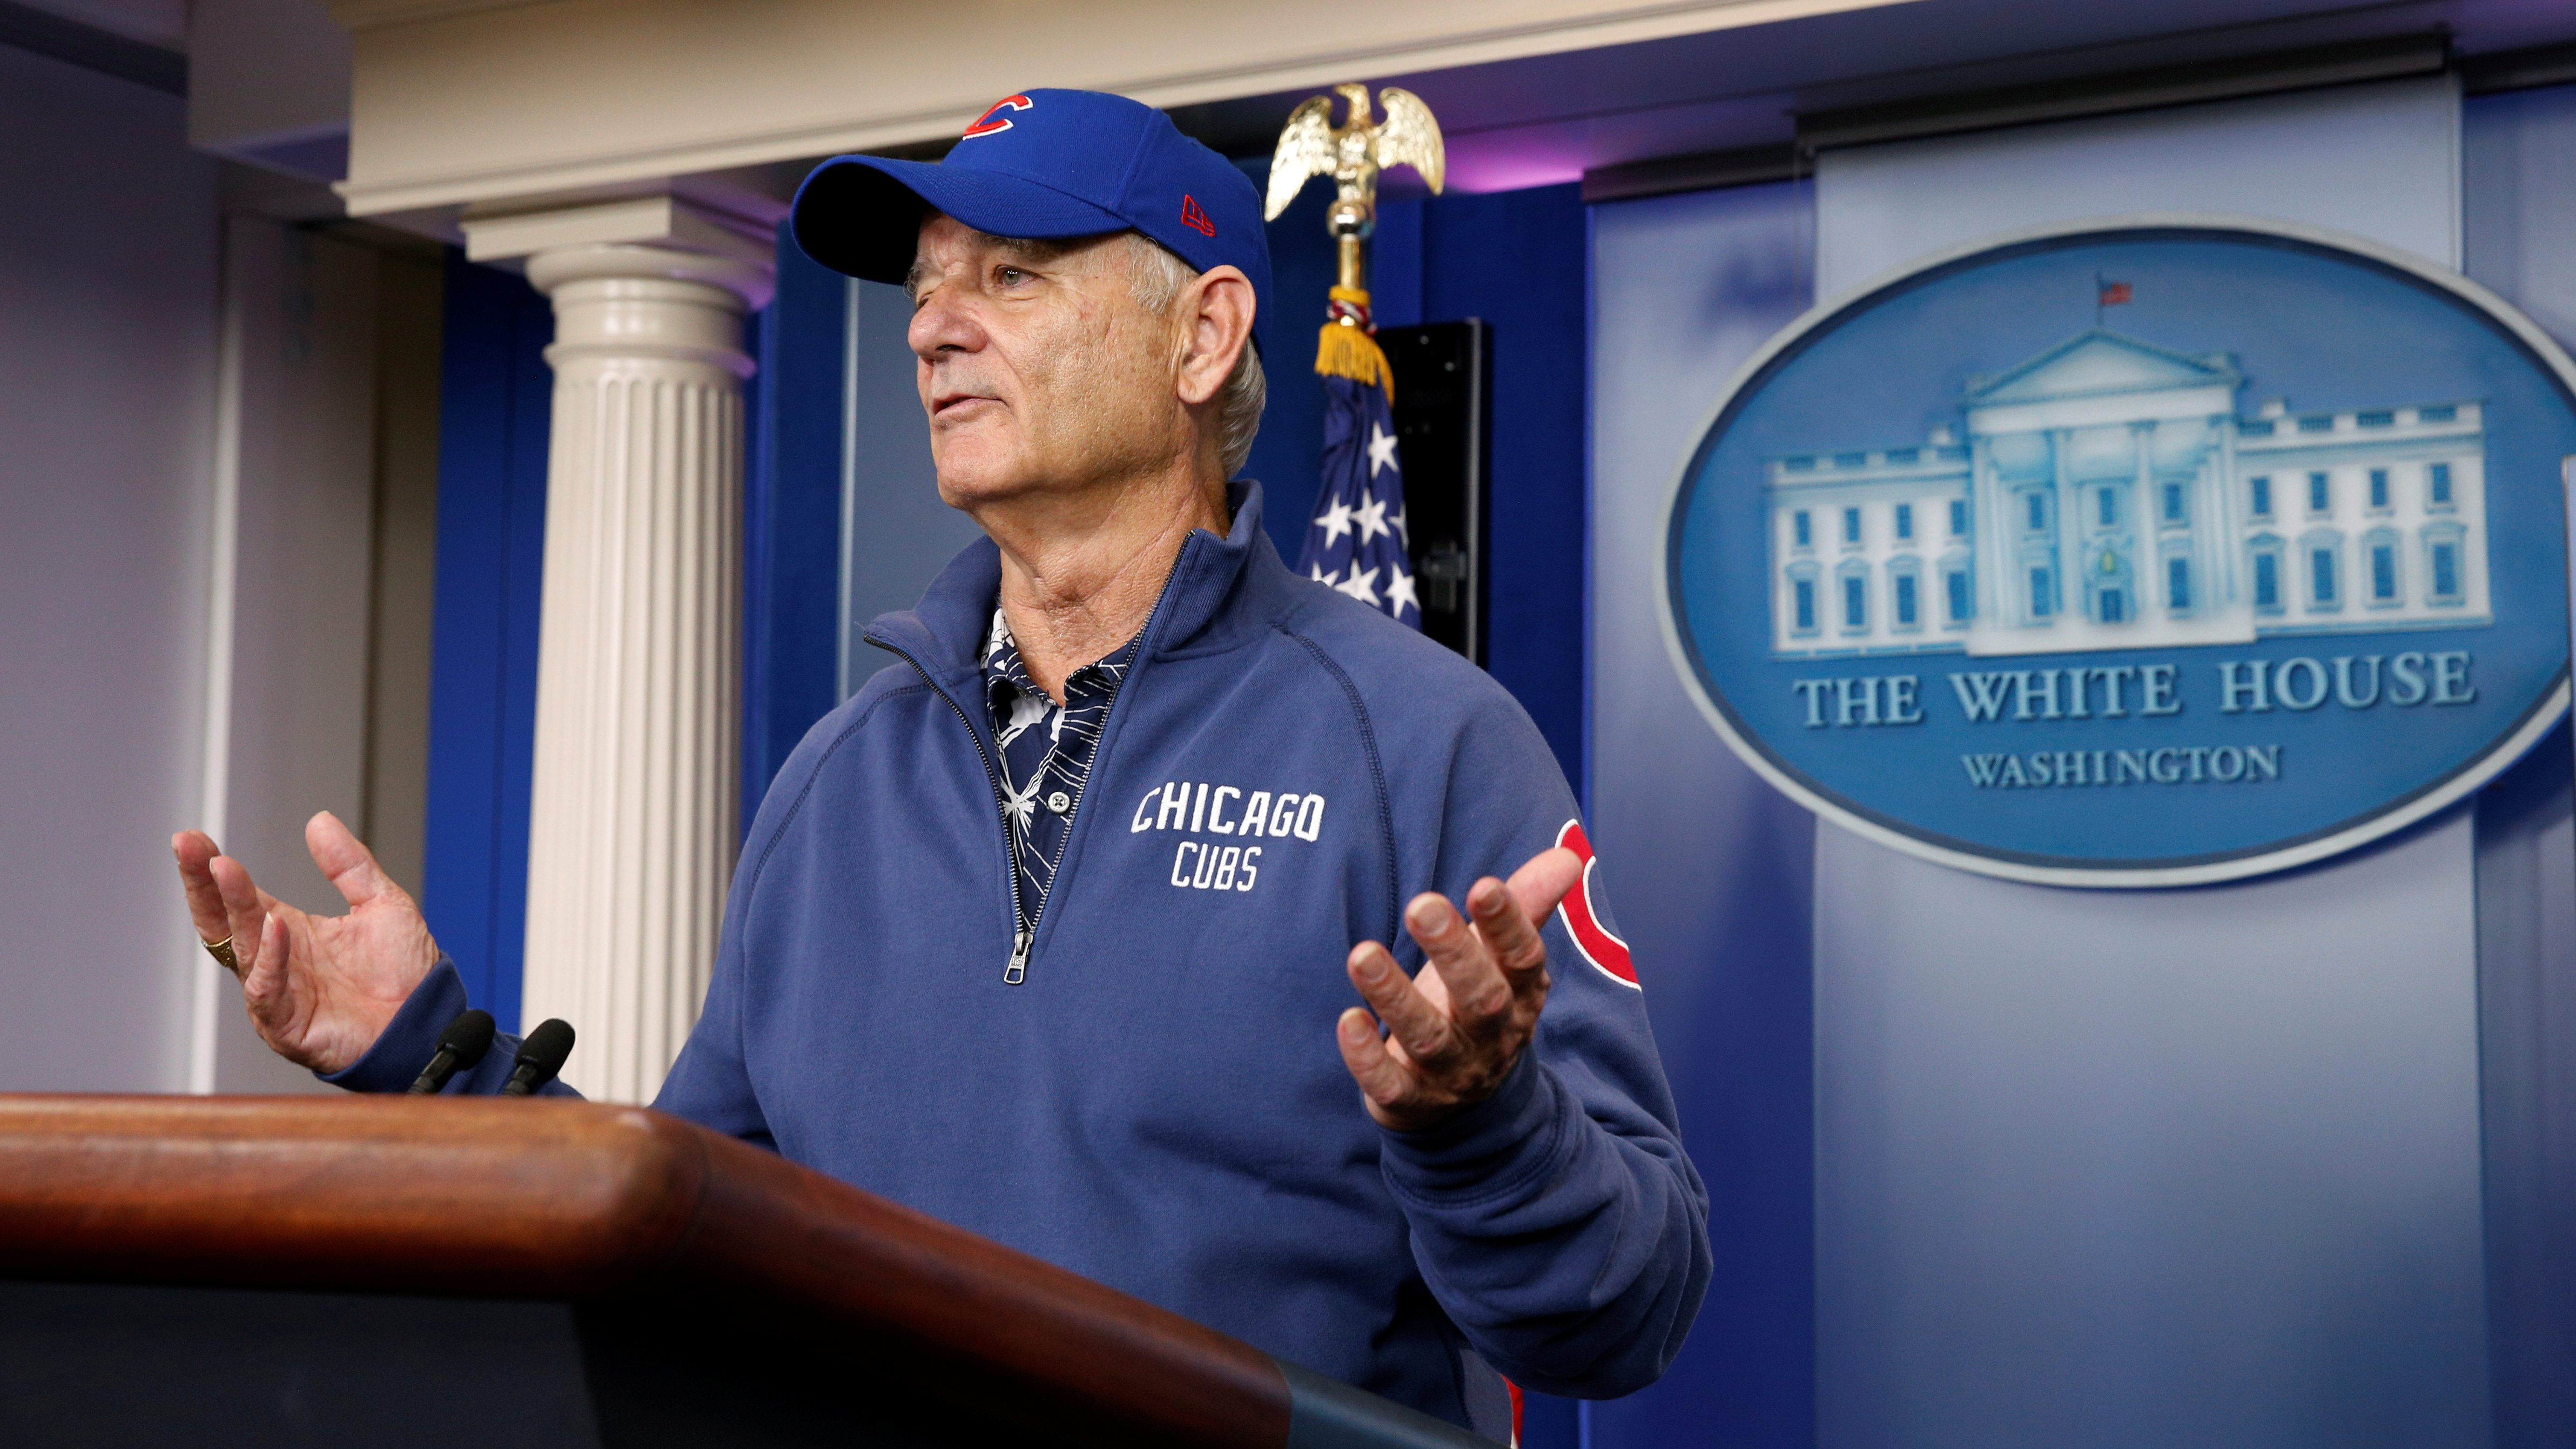 Actor Bill Murray, in Chicago Cubs attire, takes to the lectern in the briefing room during a visit to the White House.